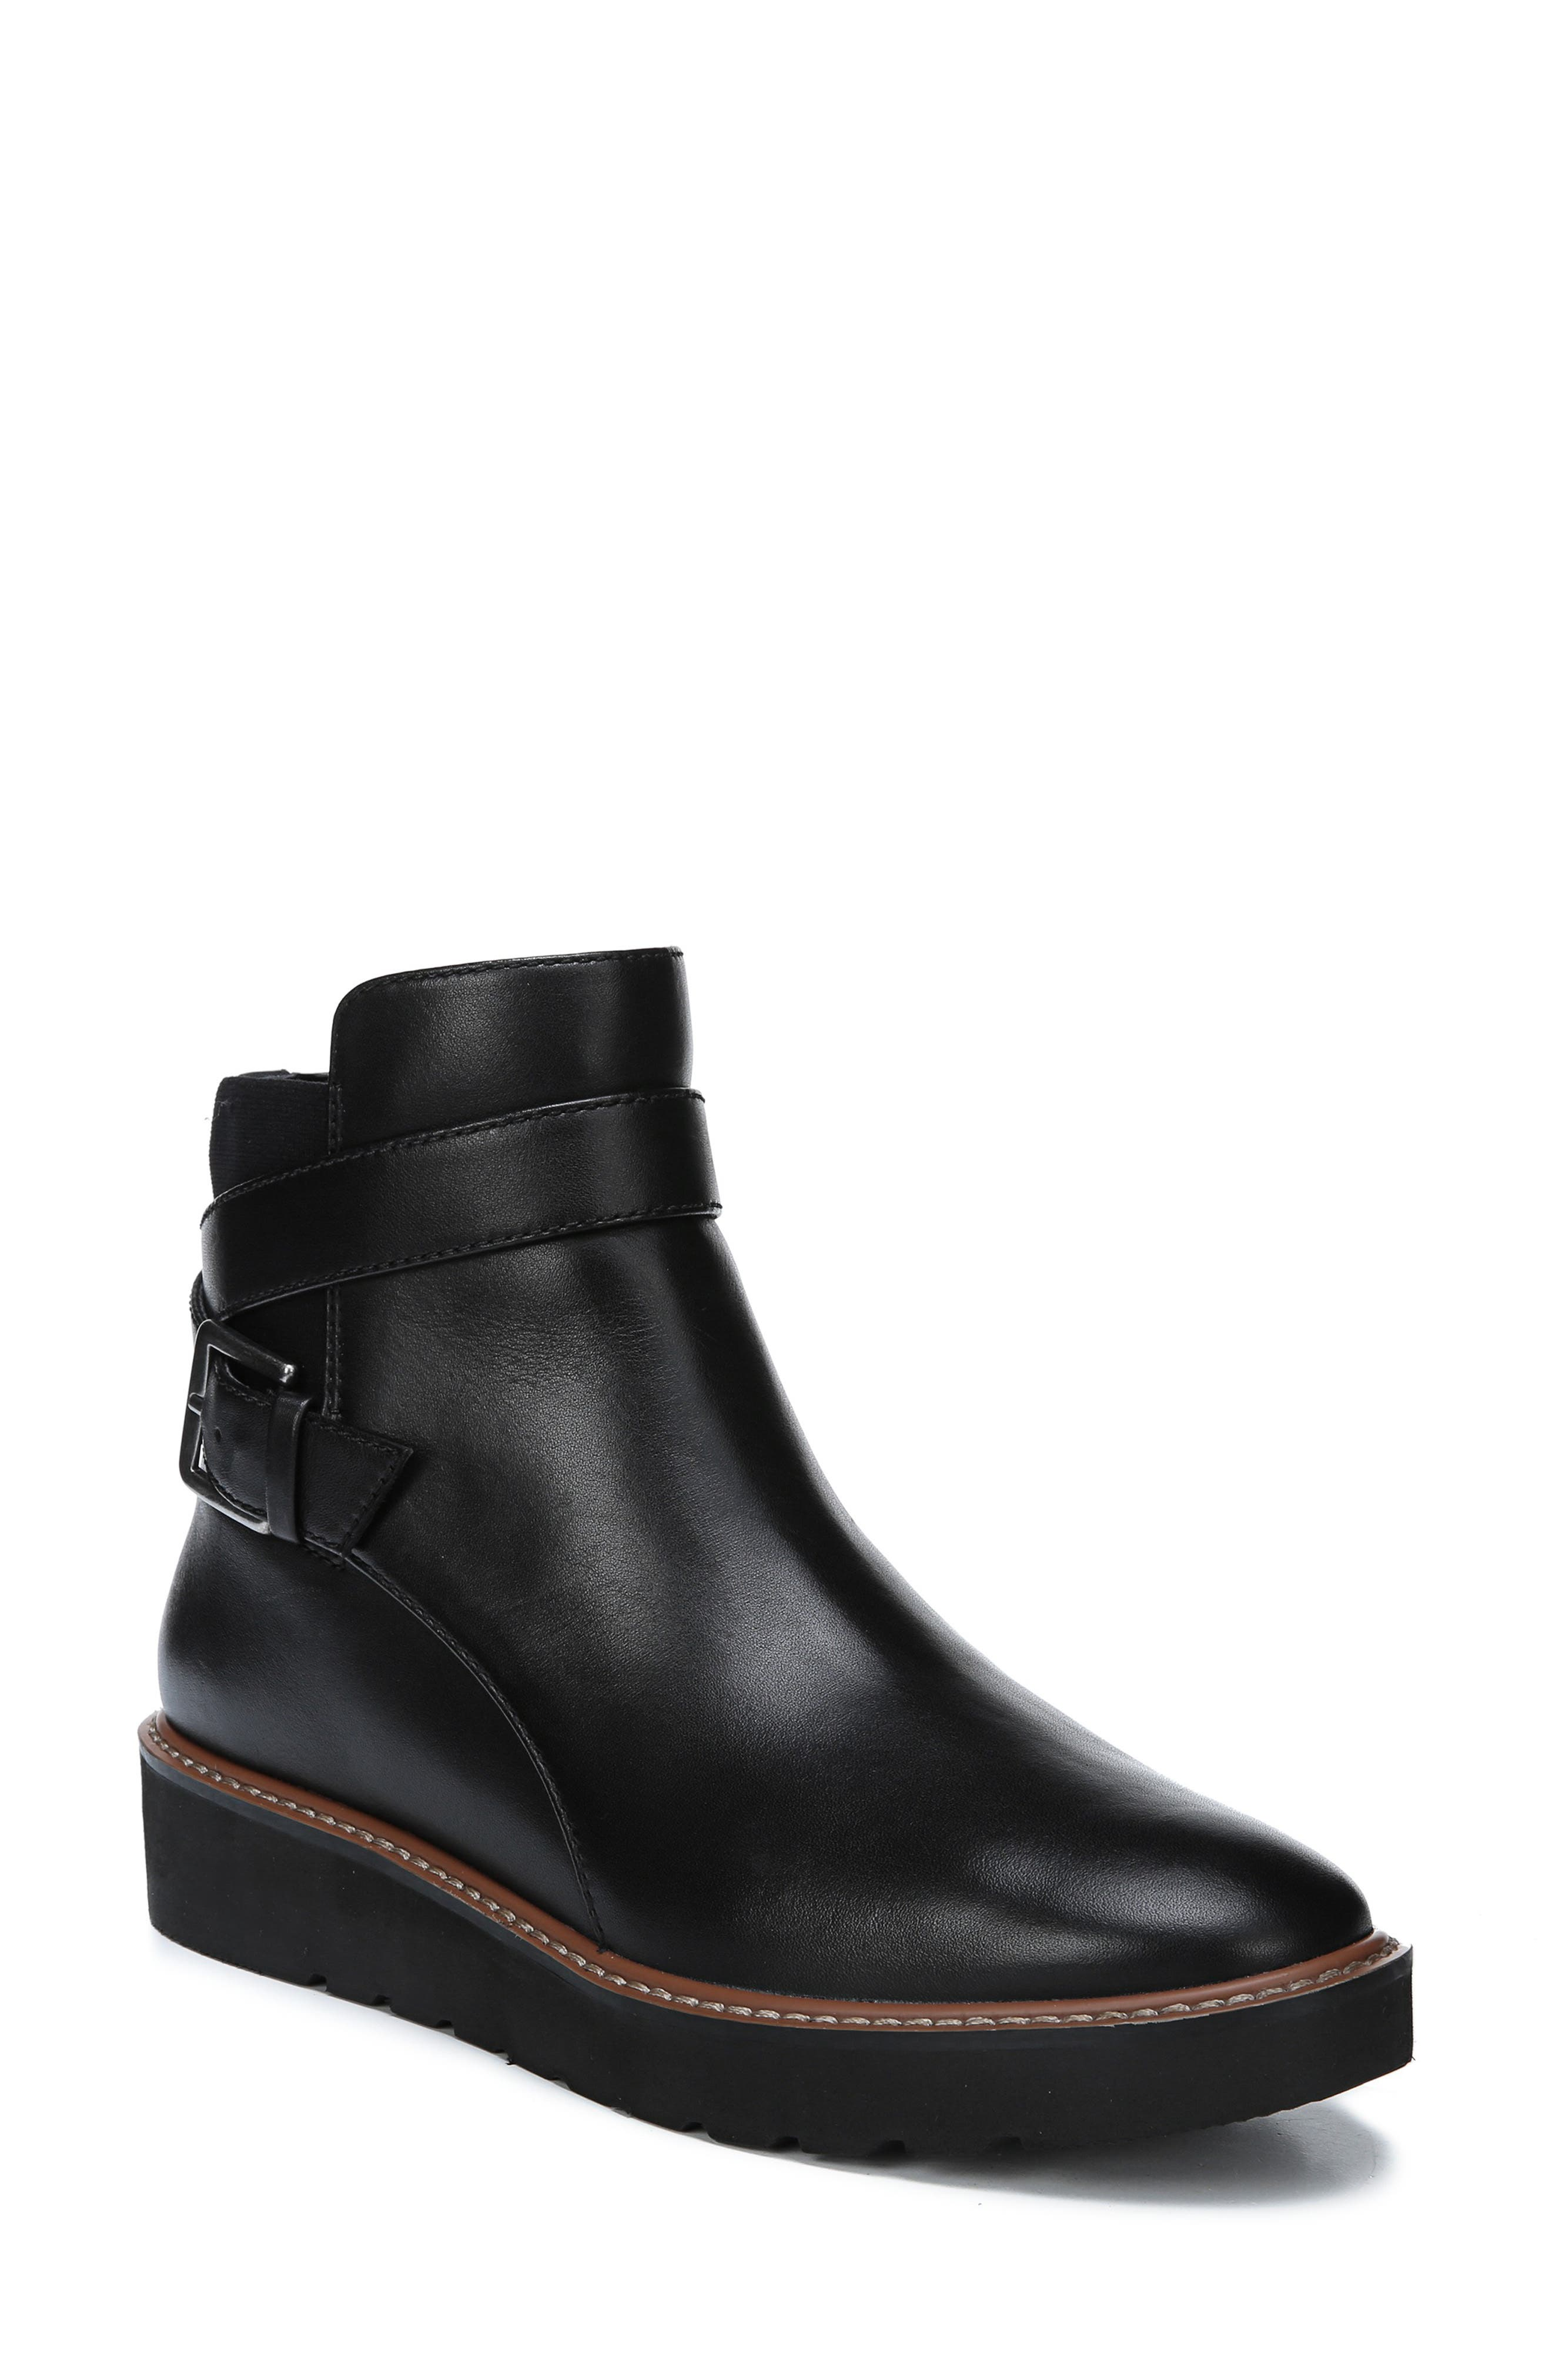 NATURALIZER Aster Bootie, Main, color, BLACK LEATHER